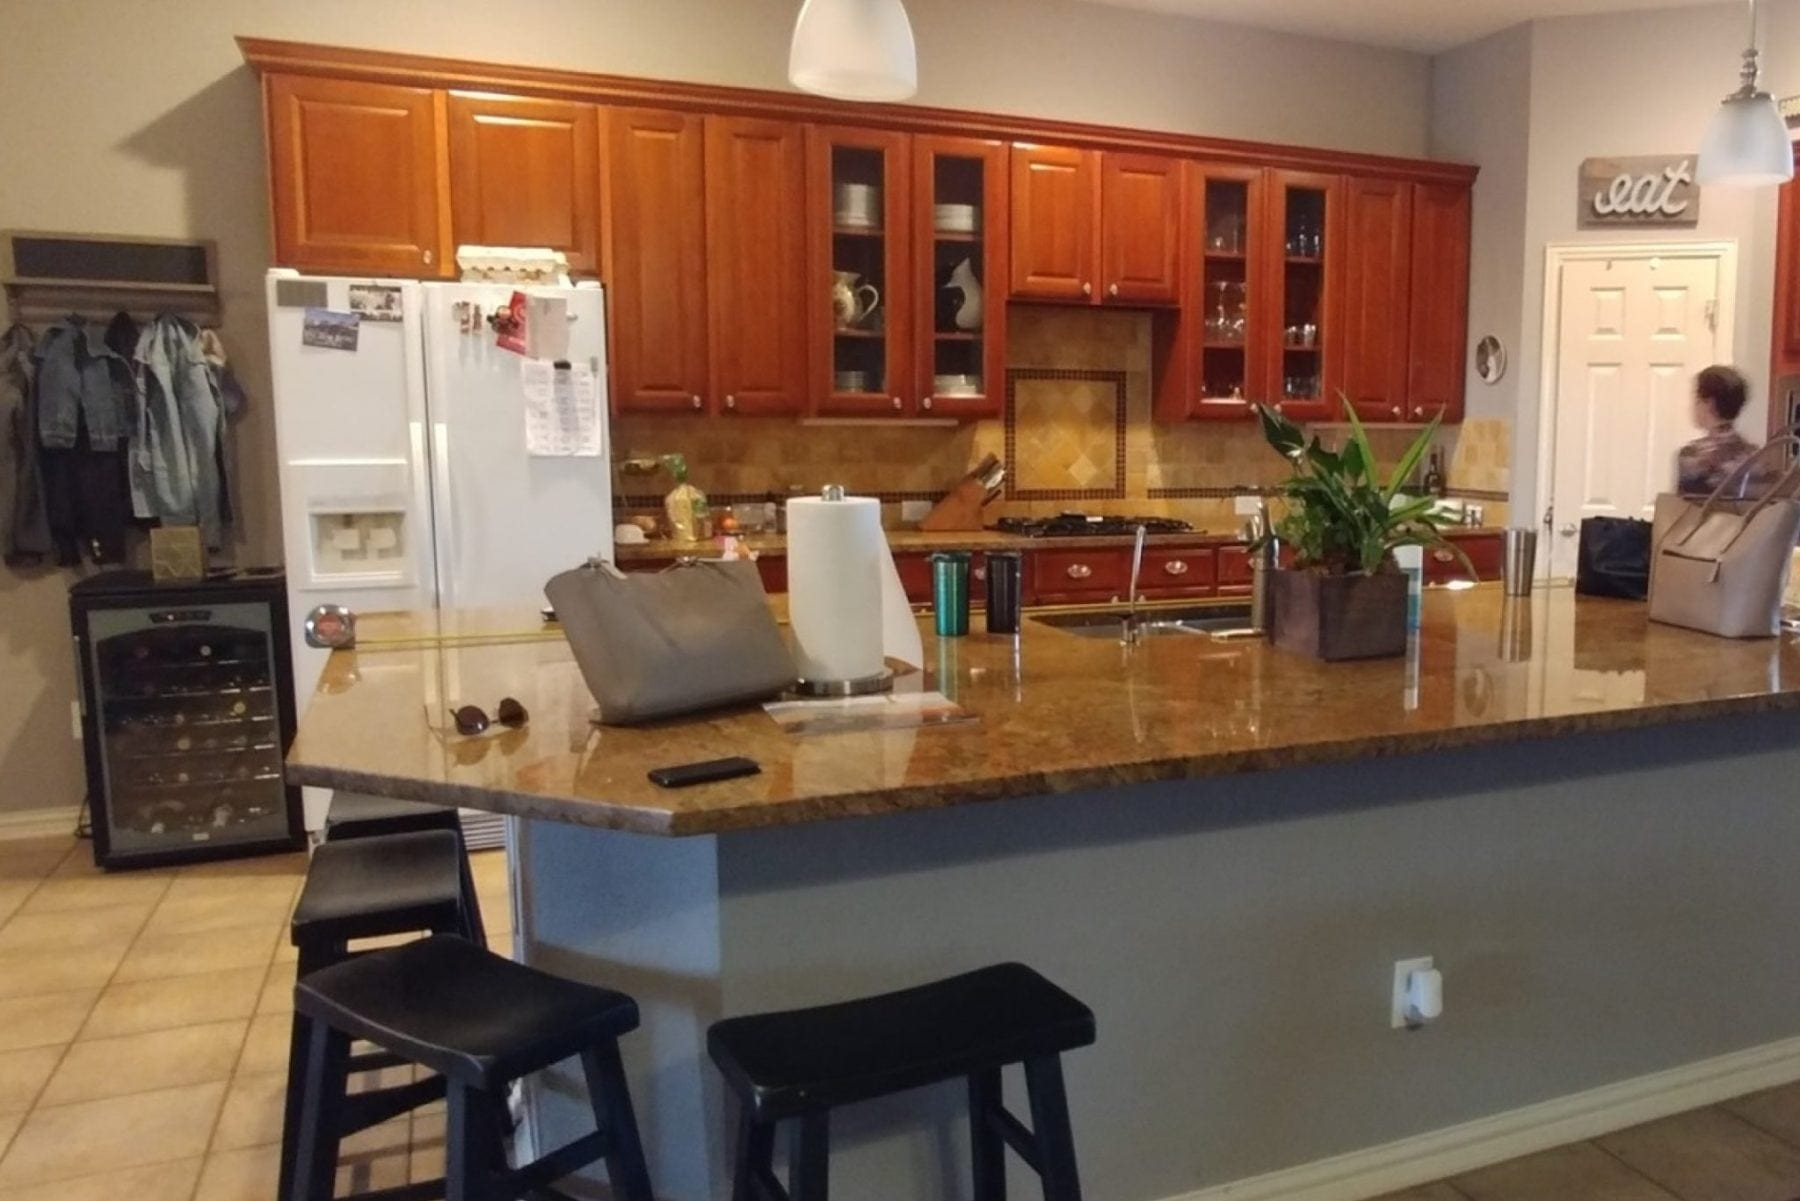 The Owner wanted to change the cabinets, floors,  back-splash, and countertops